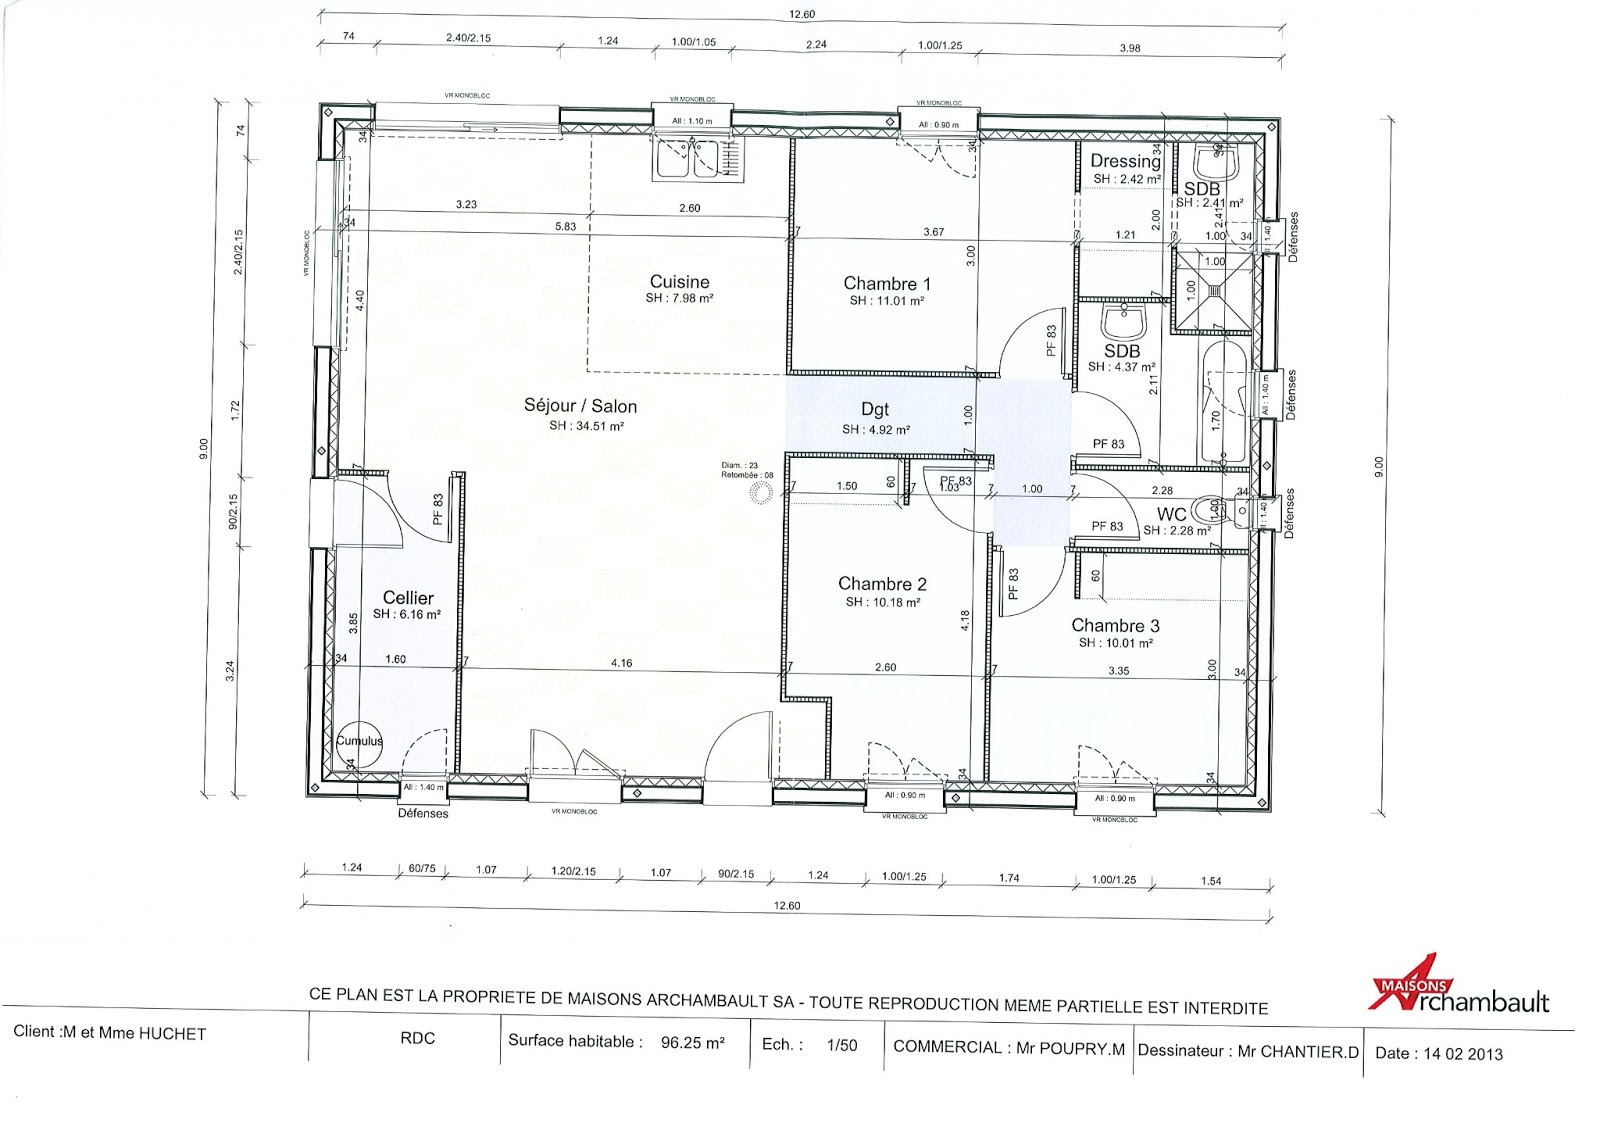 Plan interieur maison en l for Plan amenagement interieur maison gratuit